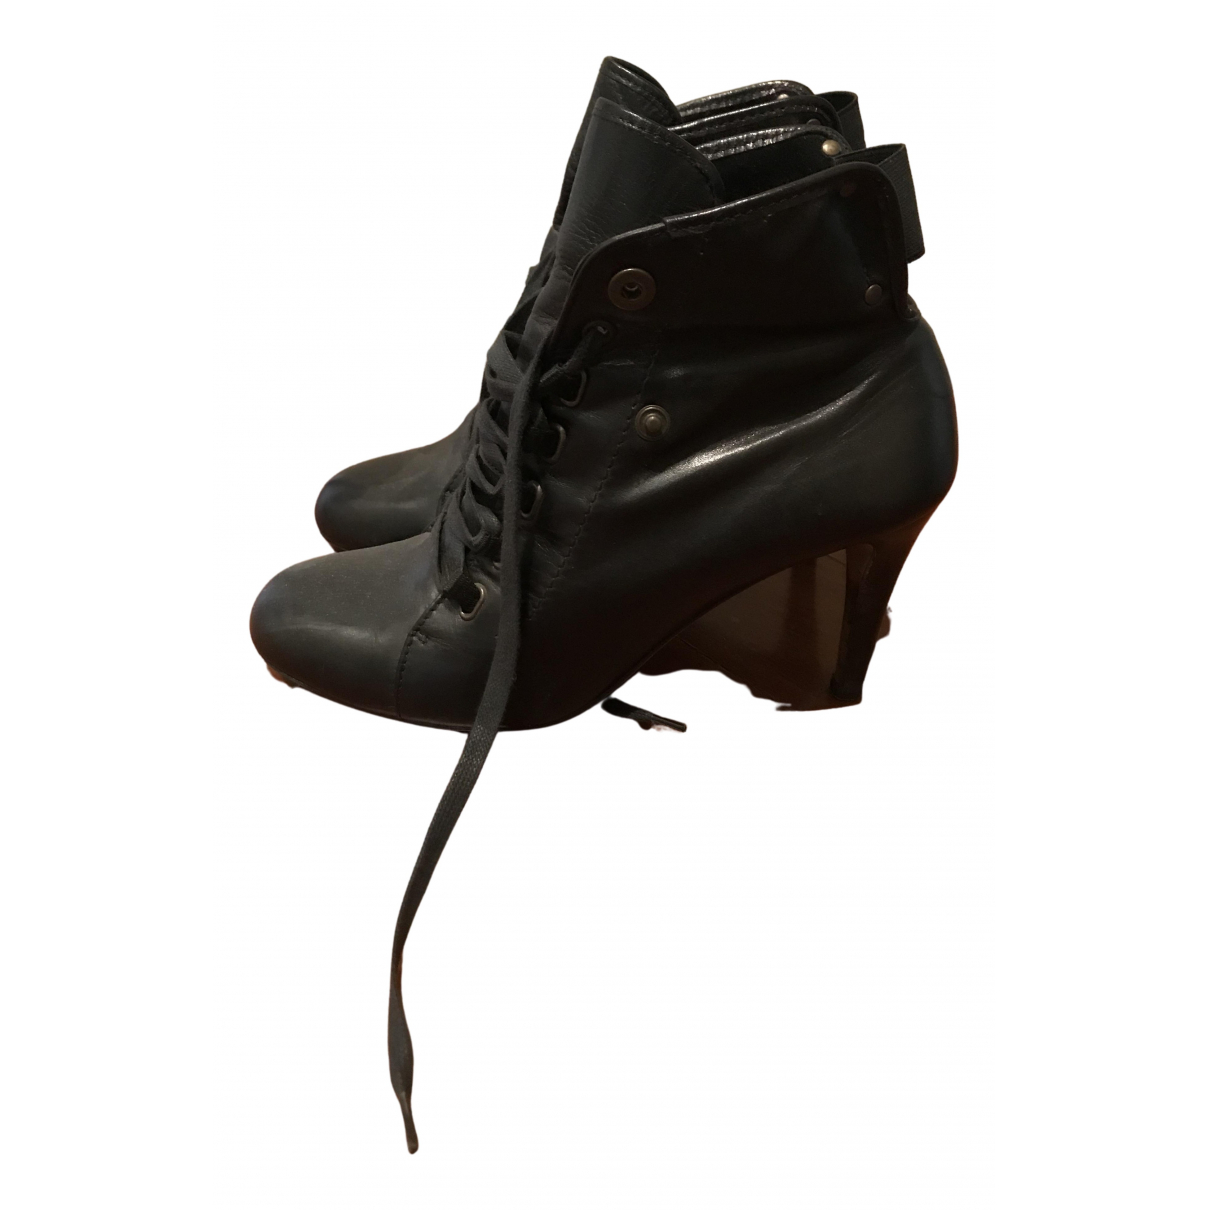 Moschino \N Black Leather Ankle boots for Women 38 EU